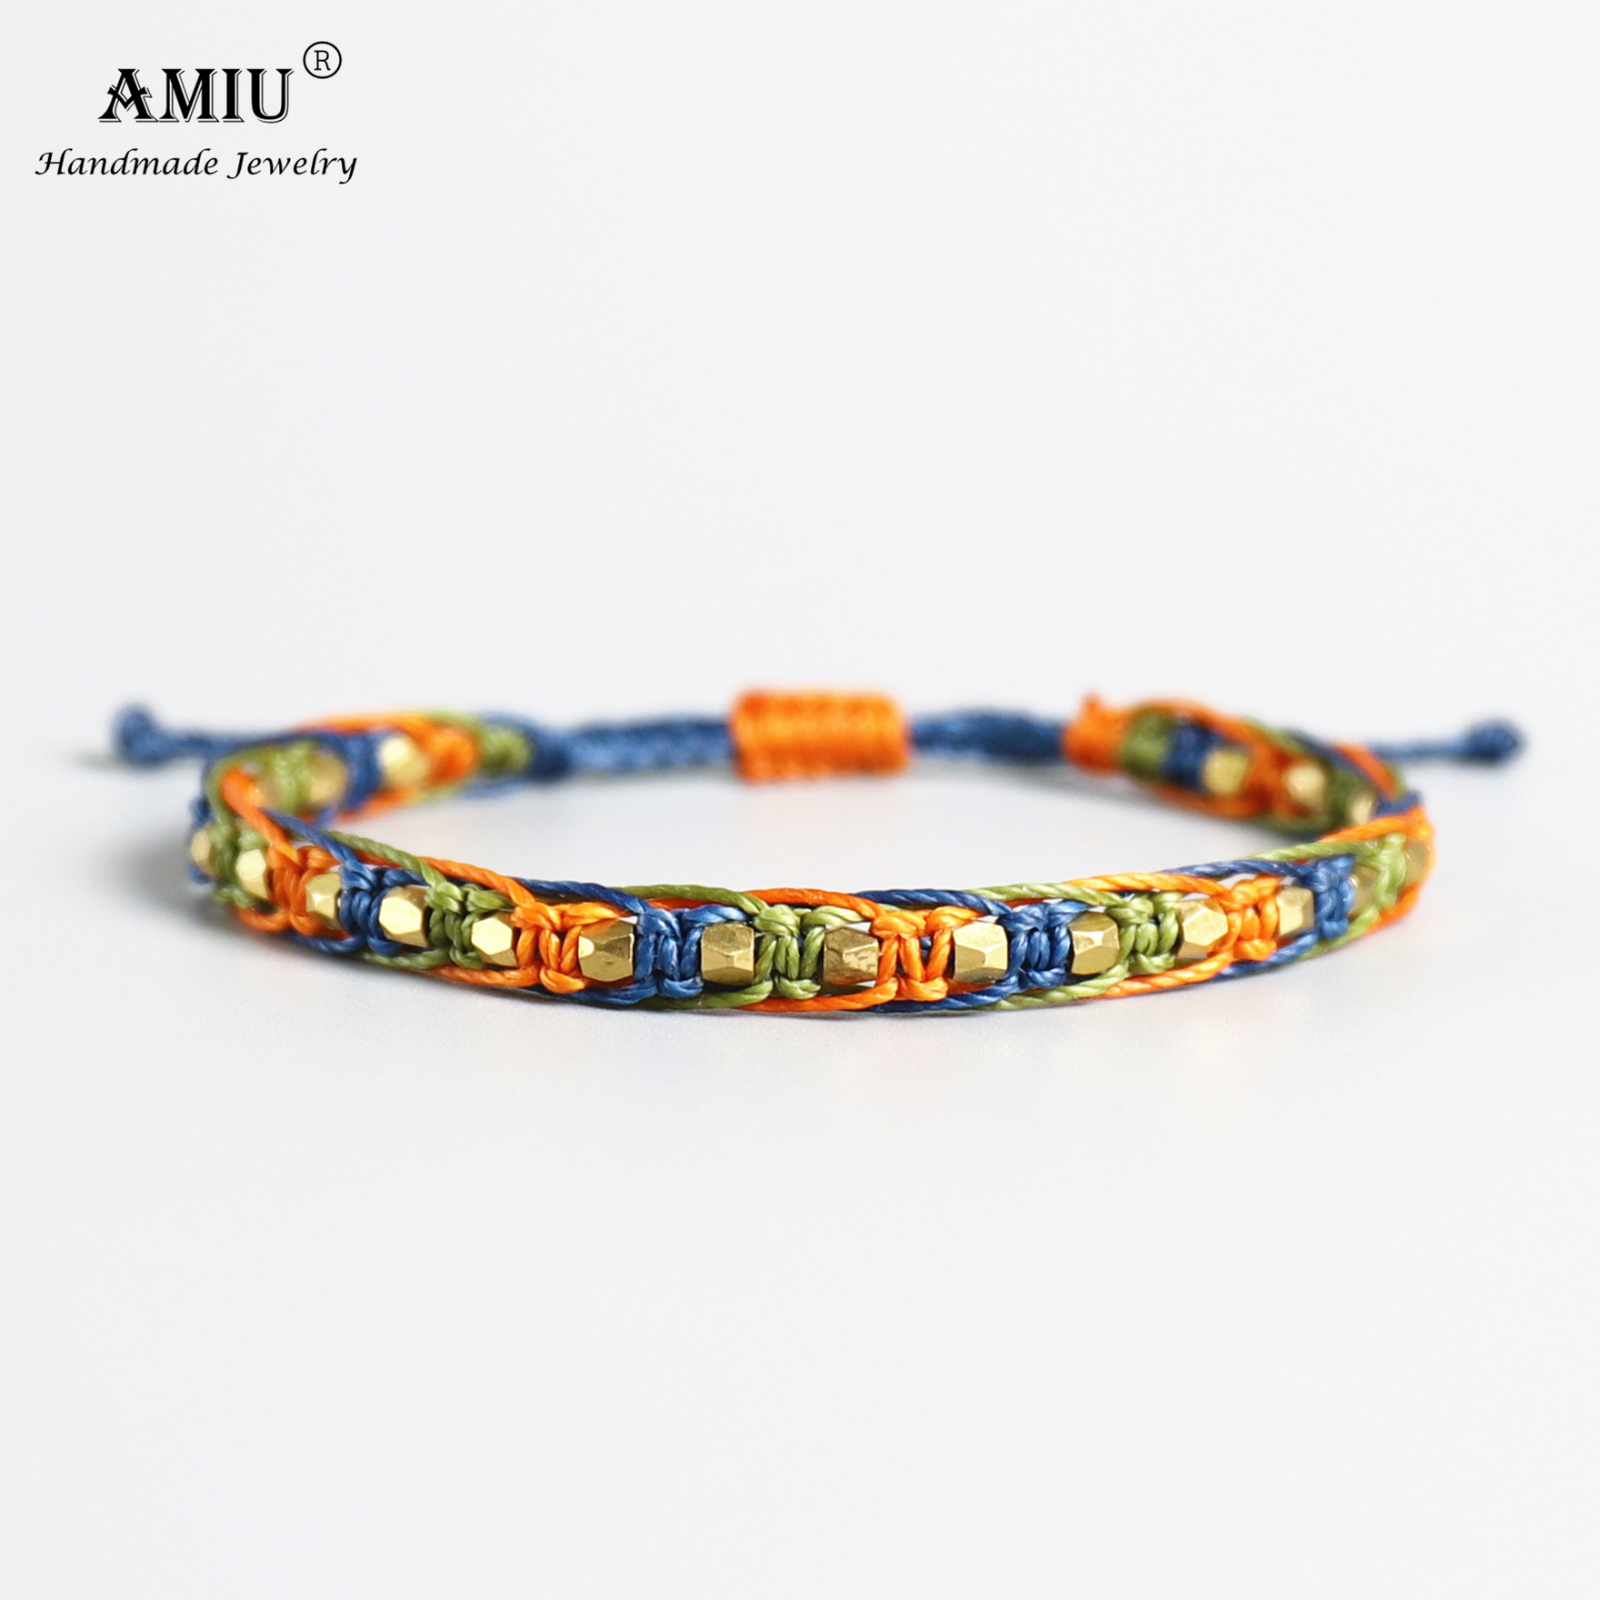 AMIU Handmade Waterproof Wax Thread Copper Bead Lucky Rope Bracelet & Bangles For Women Men Friendship Woven Macrame Bracelets